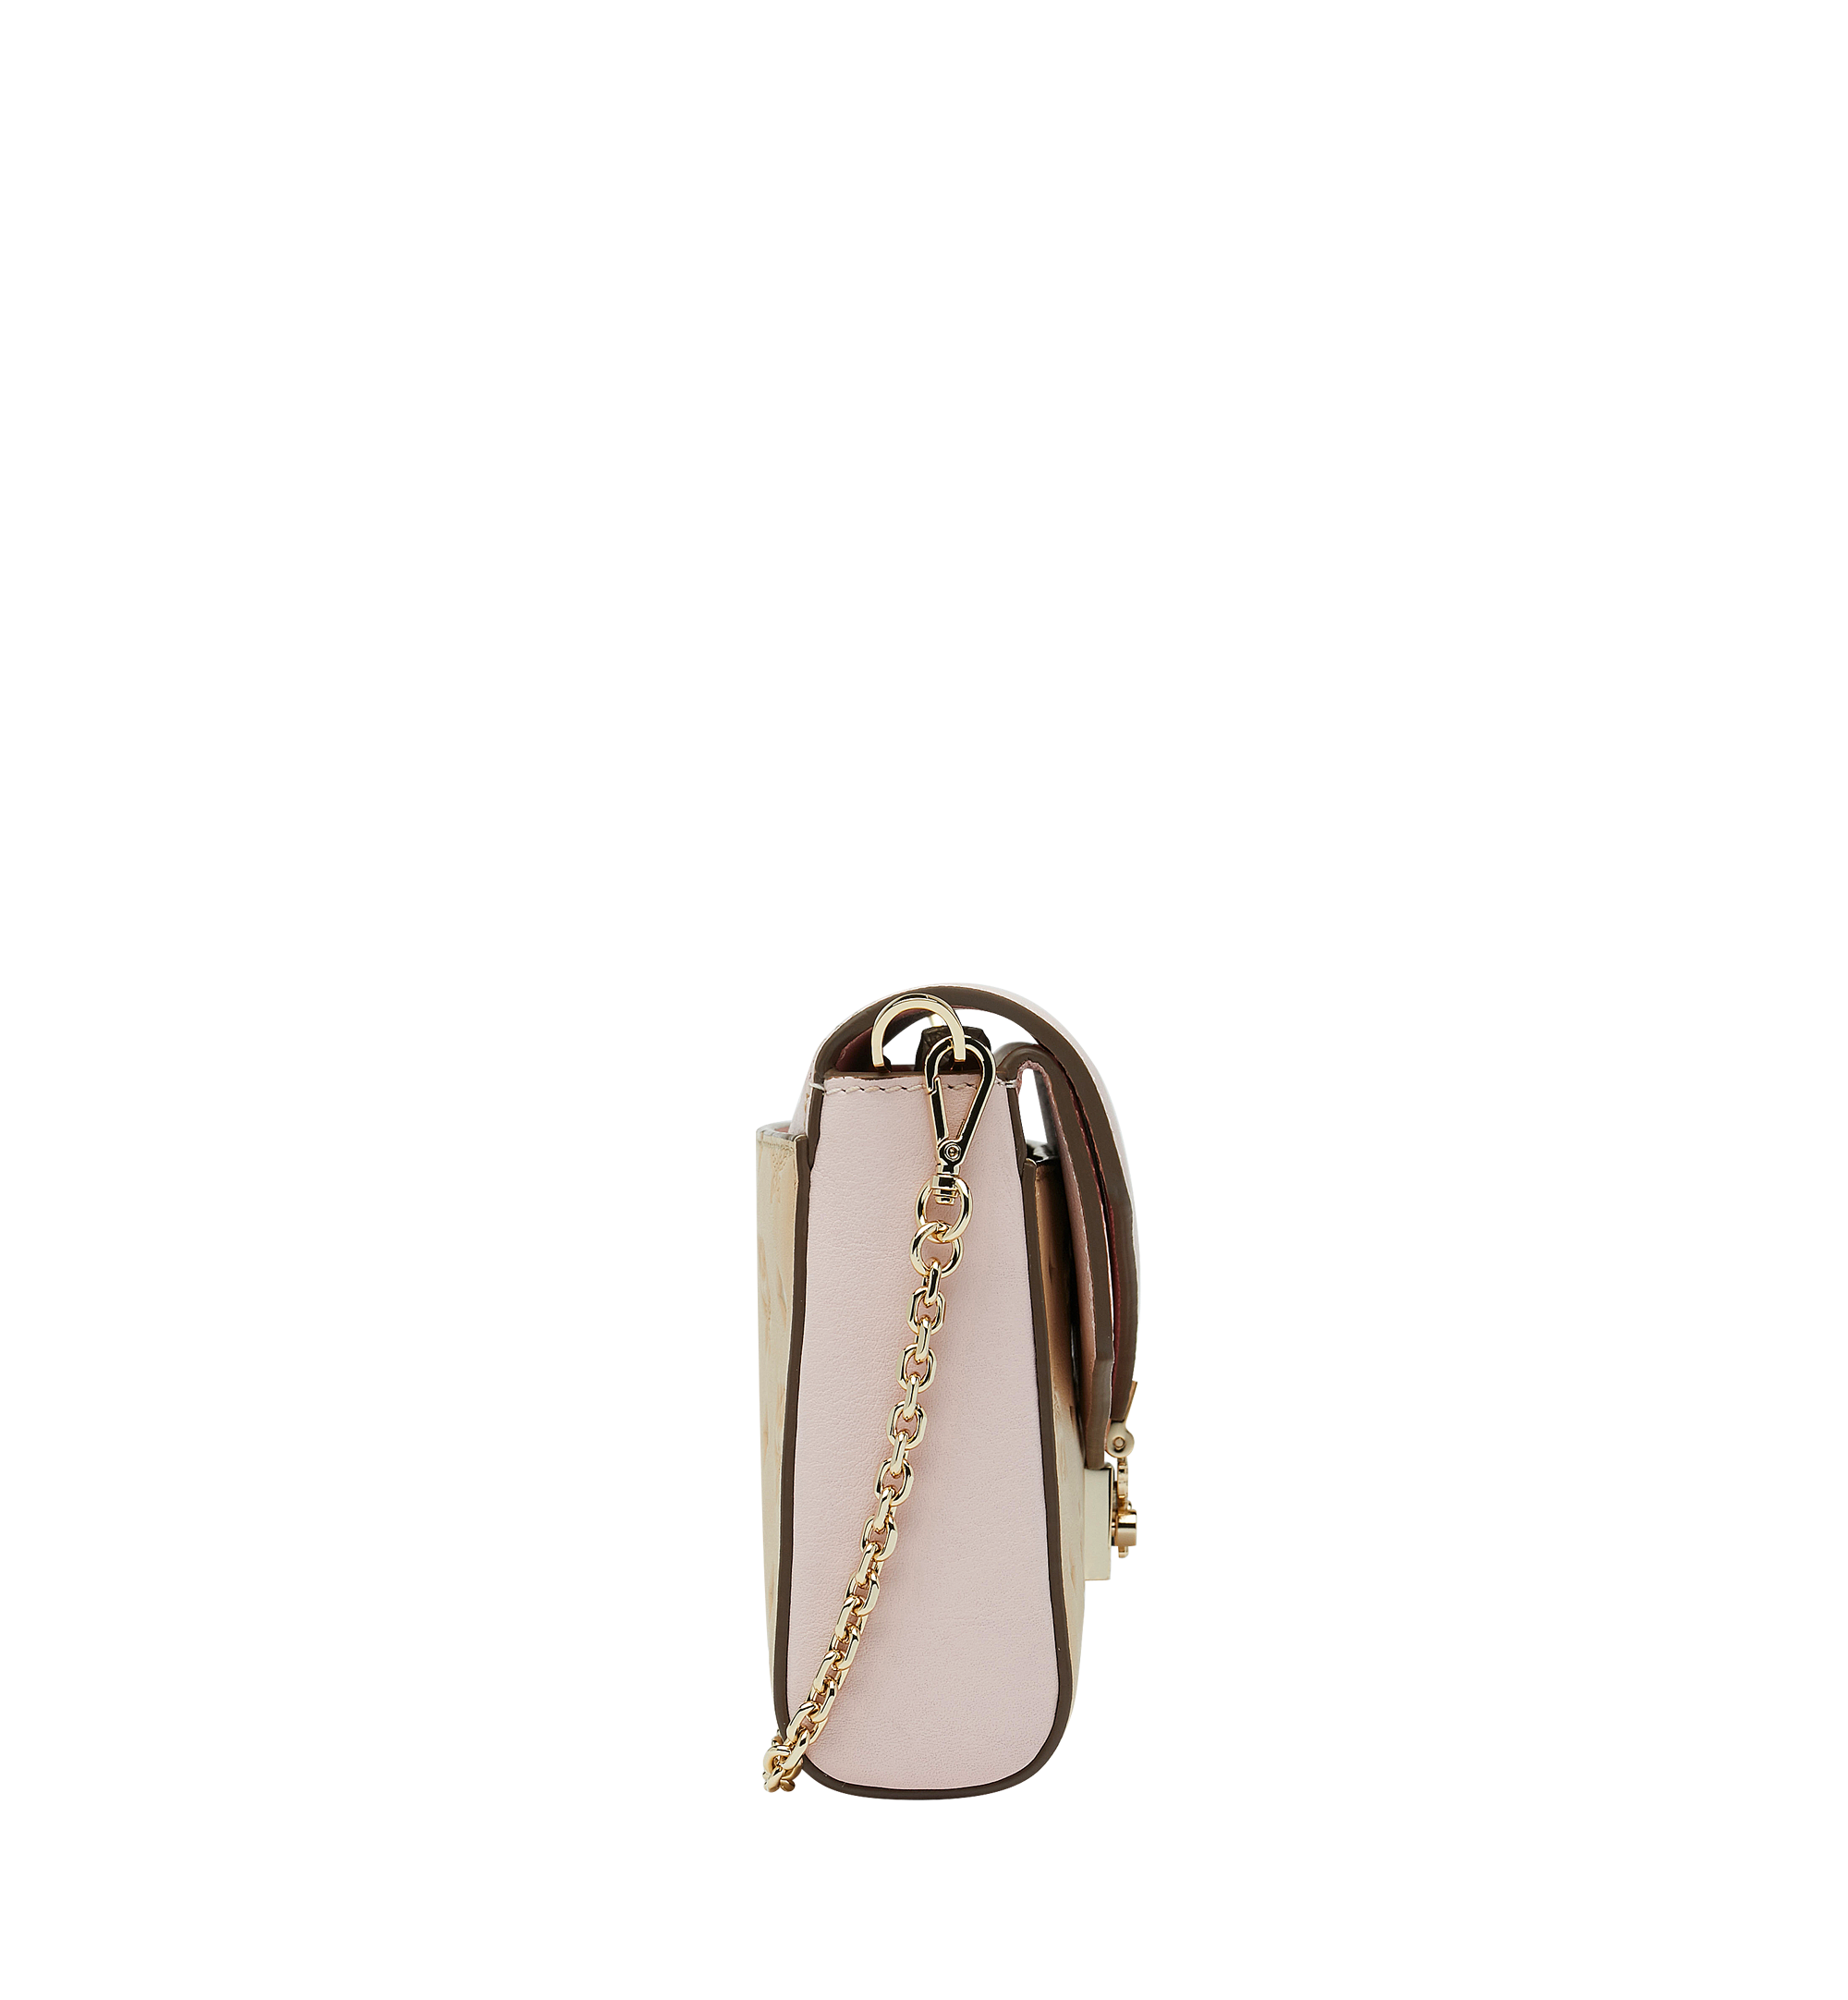 Medium Millie Flap Crossbody in Monogram Leather Latte Beige